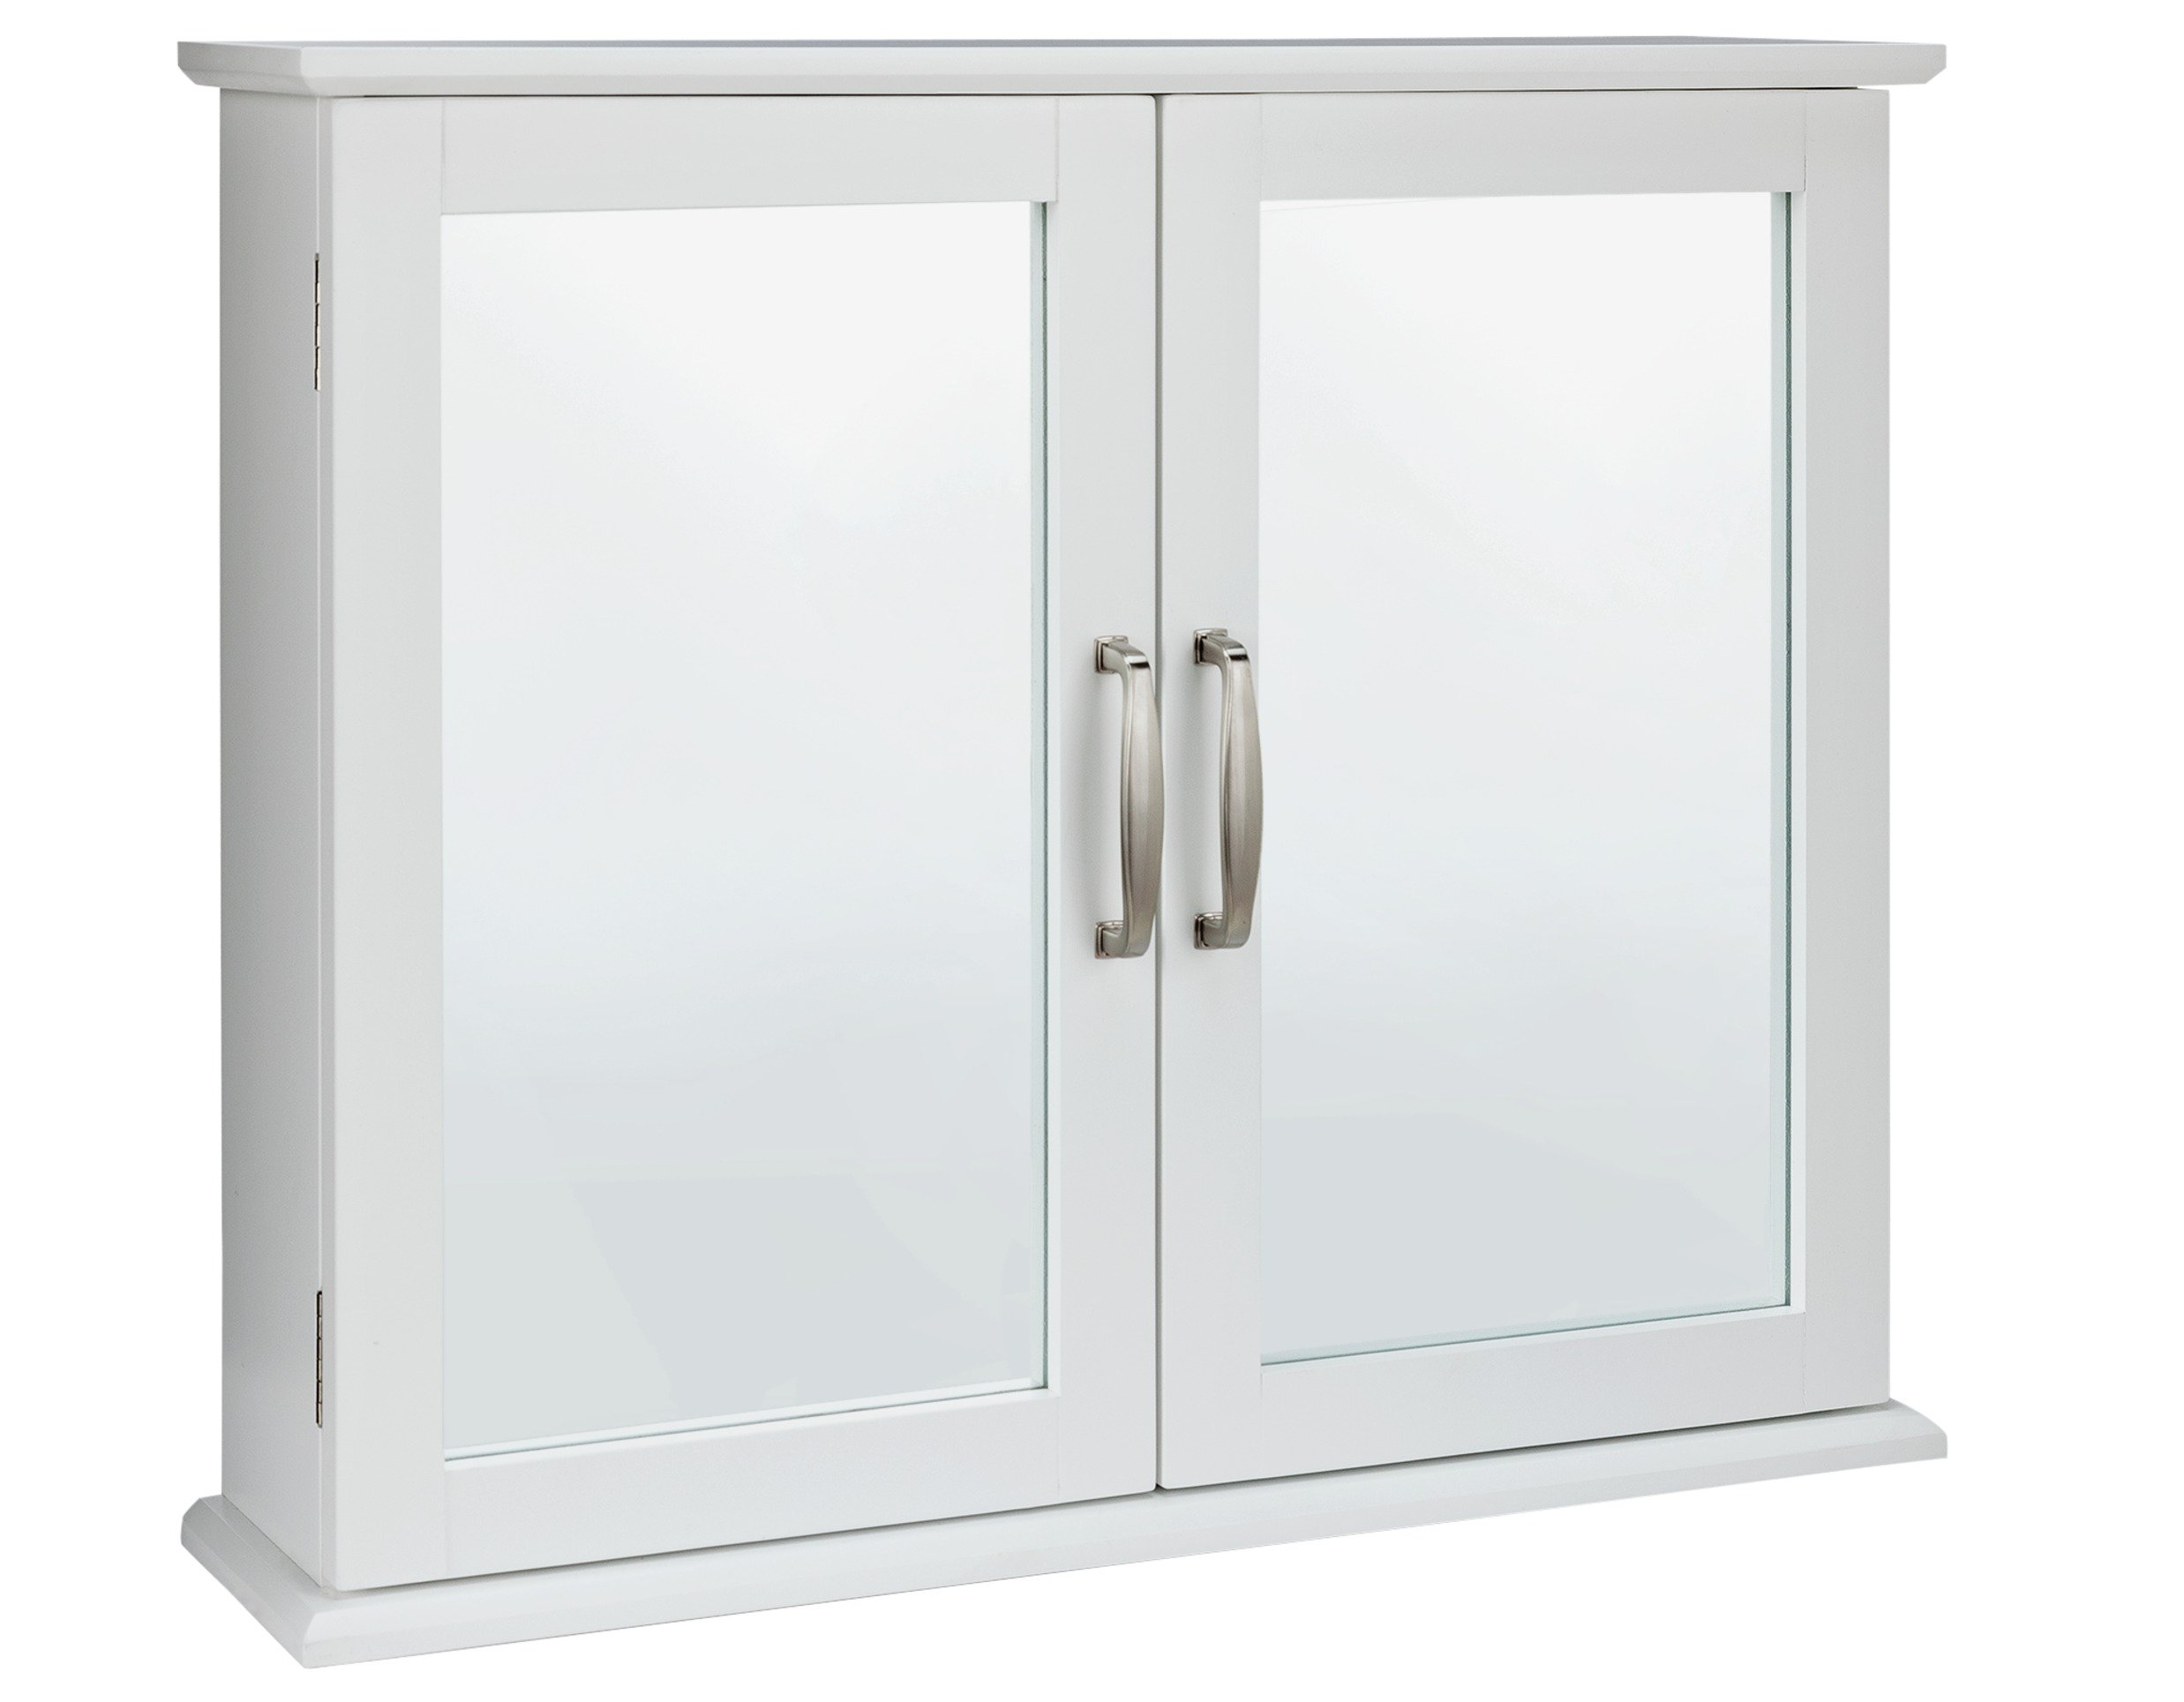 Mirrored Wall Cabinet buy collection new tongue and groove mirrored wall cabinet-white